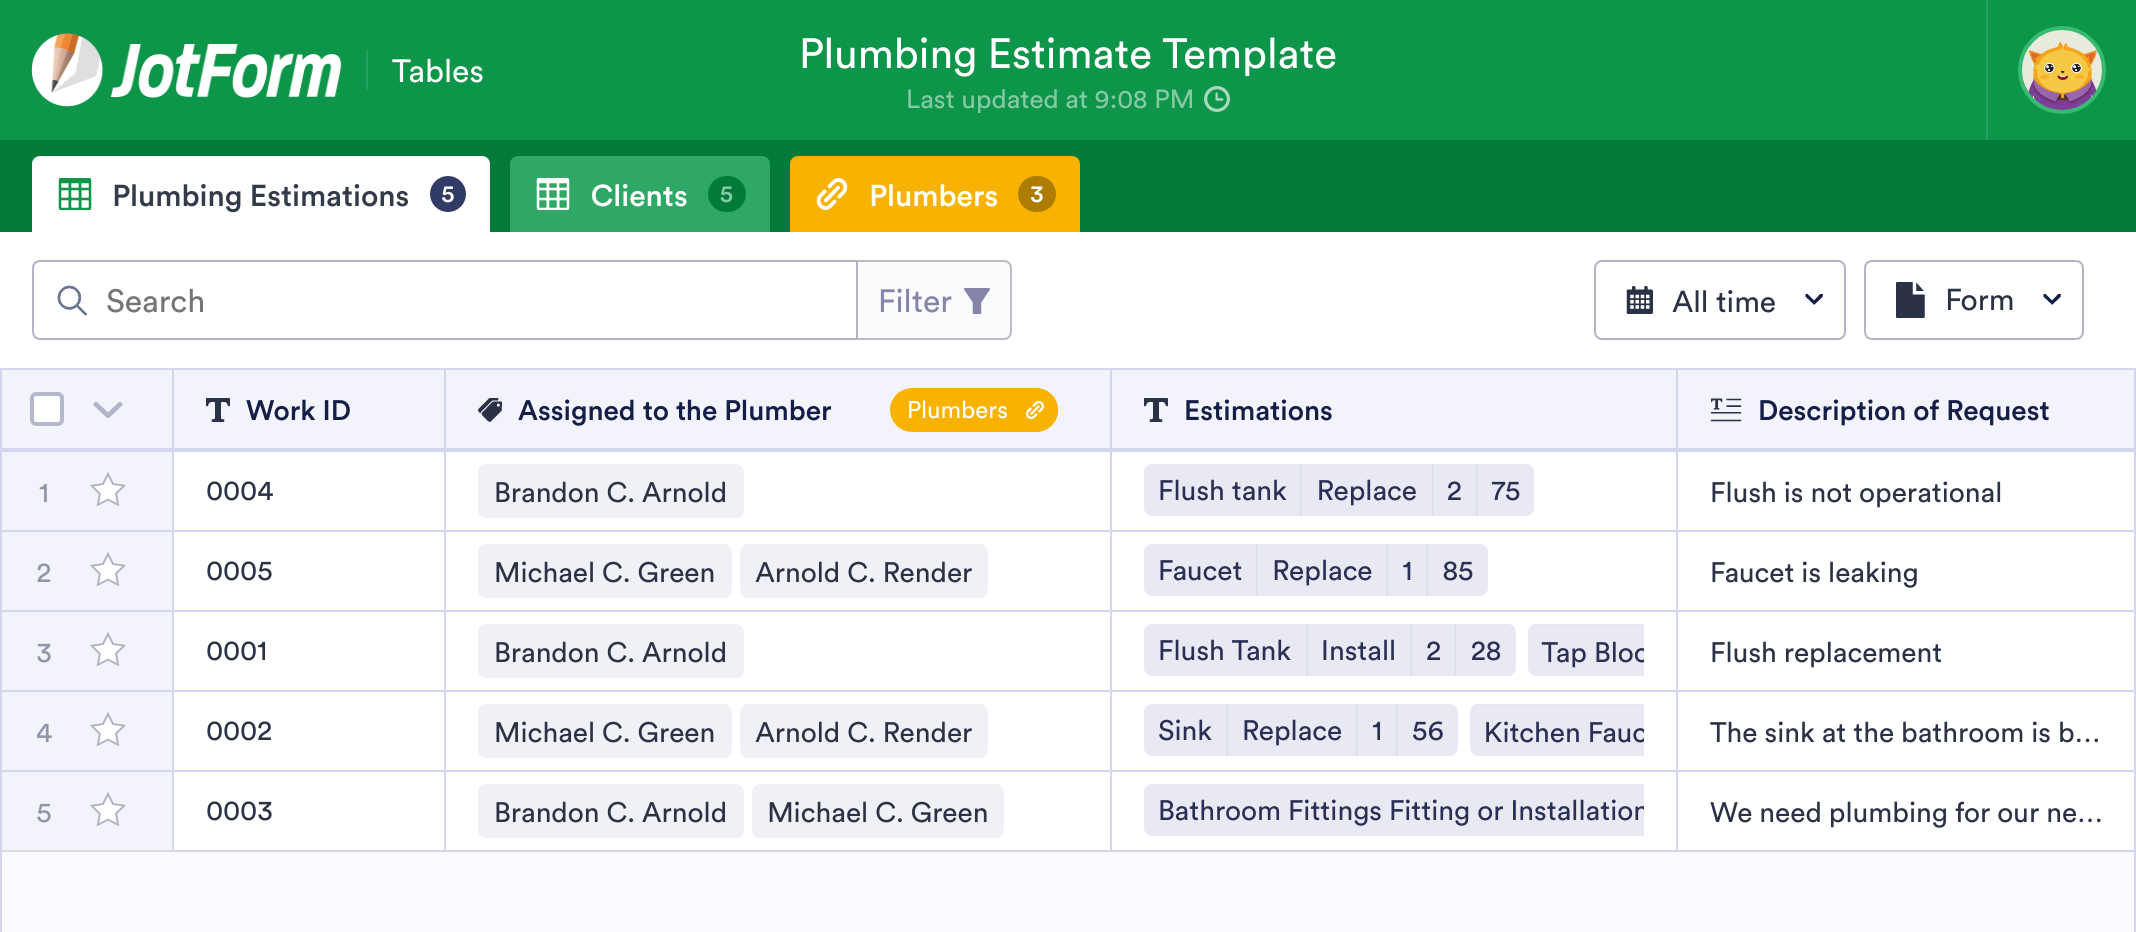 Plumbing Estimate Template